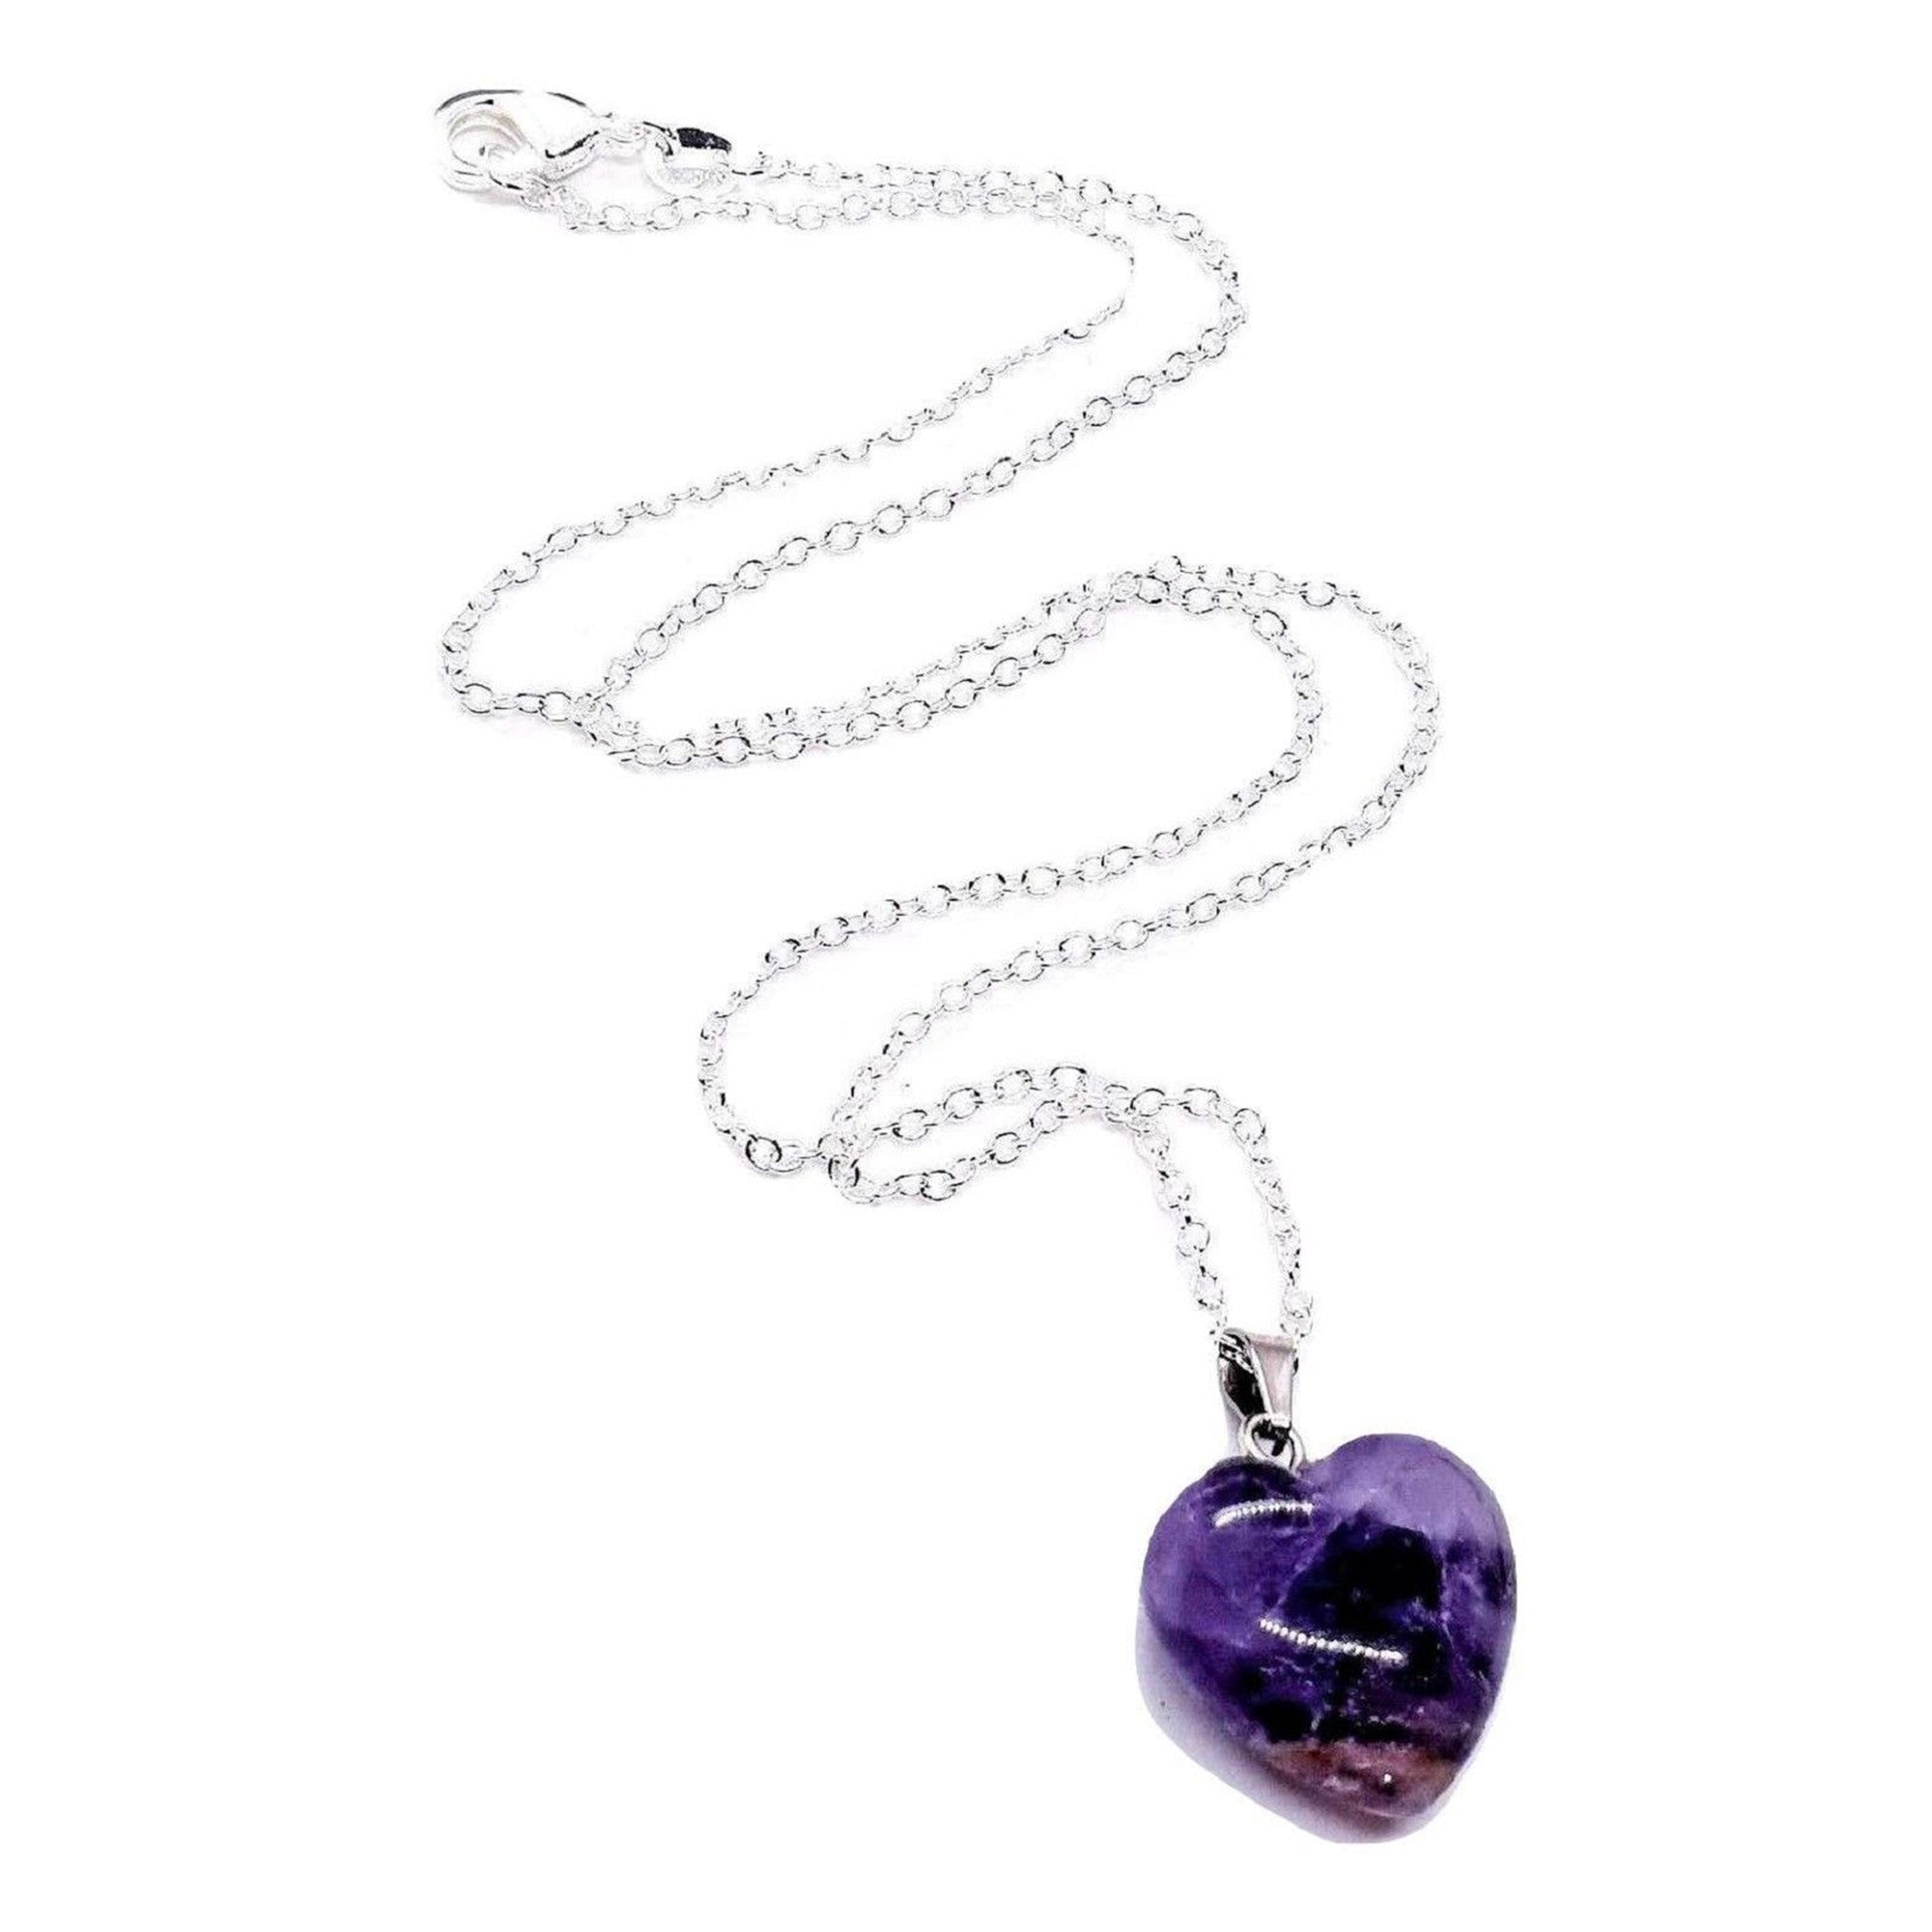 Amethyst Heart Necklace - Our Chakras